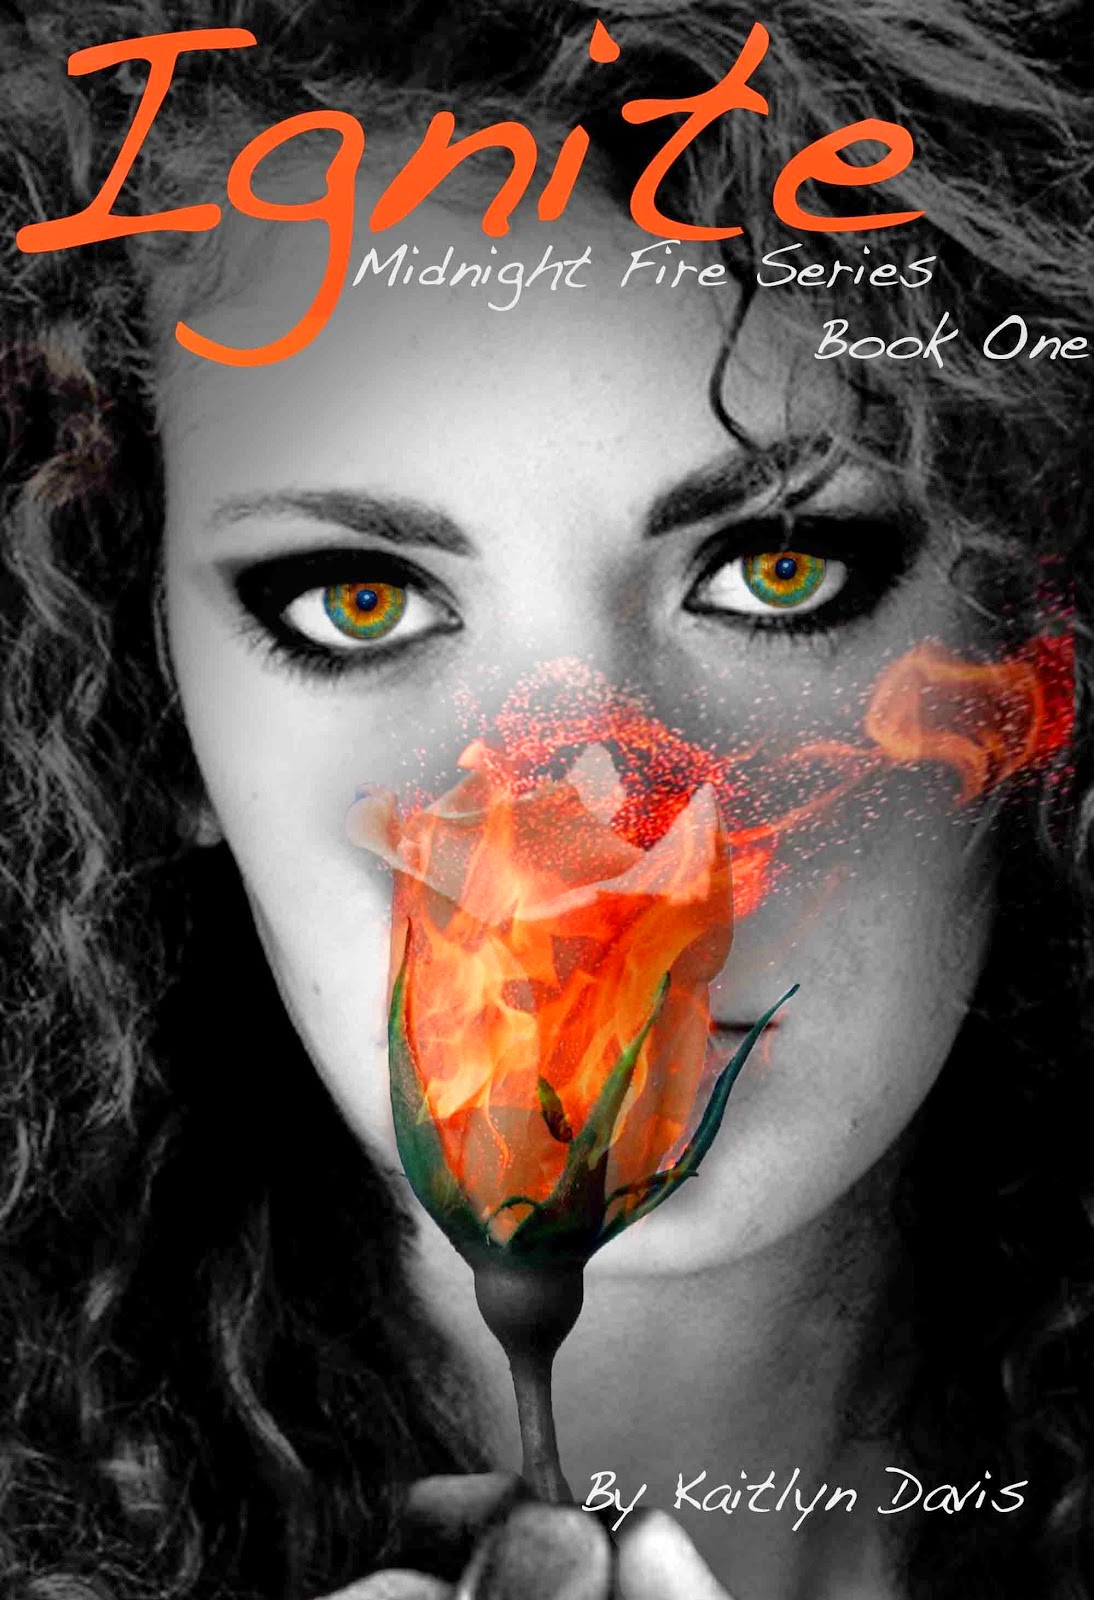 http://www.amazon.com/Ignite-Midnight-Fire-Book-1-ebook/dp/B005U8GQT6/ref=sr_1_6?s=books&ie=UTF8&qid=1419275299&sr=1-6&keywords=ignite